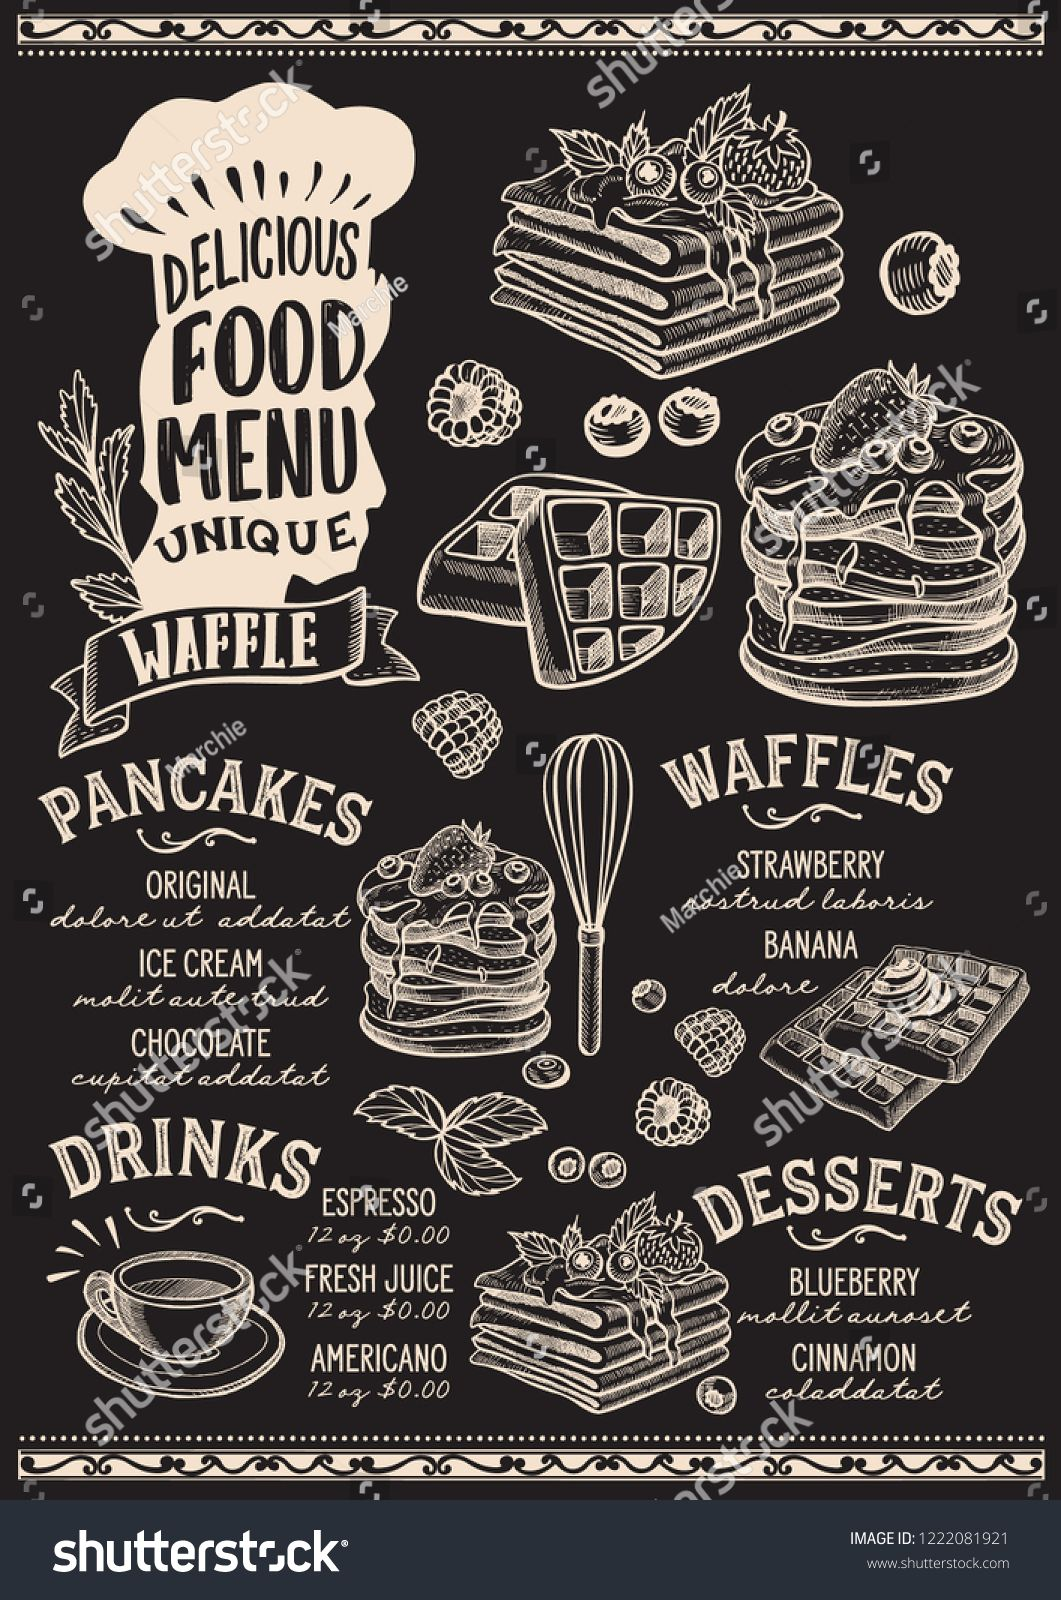 7e5ab4921c551 ... menu template for restaurant on a blackboard background vector  illustration brochure for gourmet food and drink cafe. Design layout with chefs  hat ...